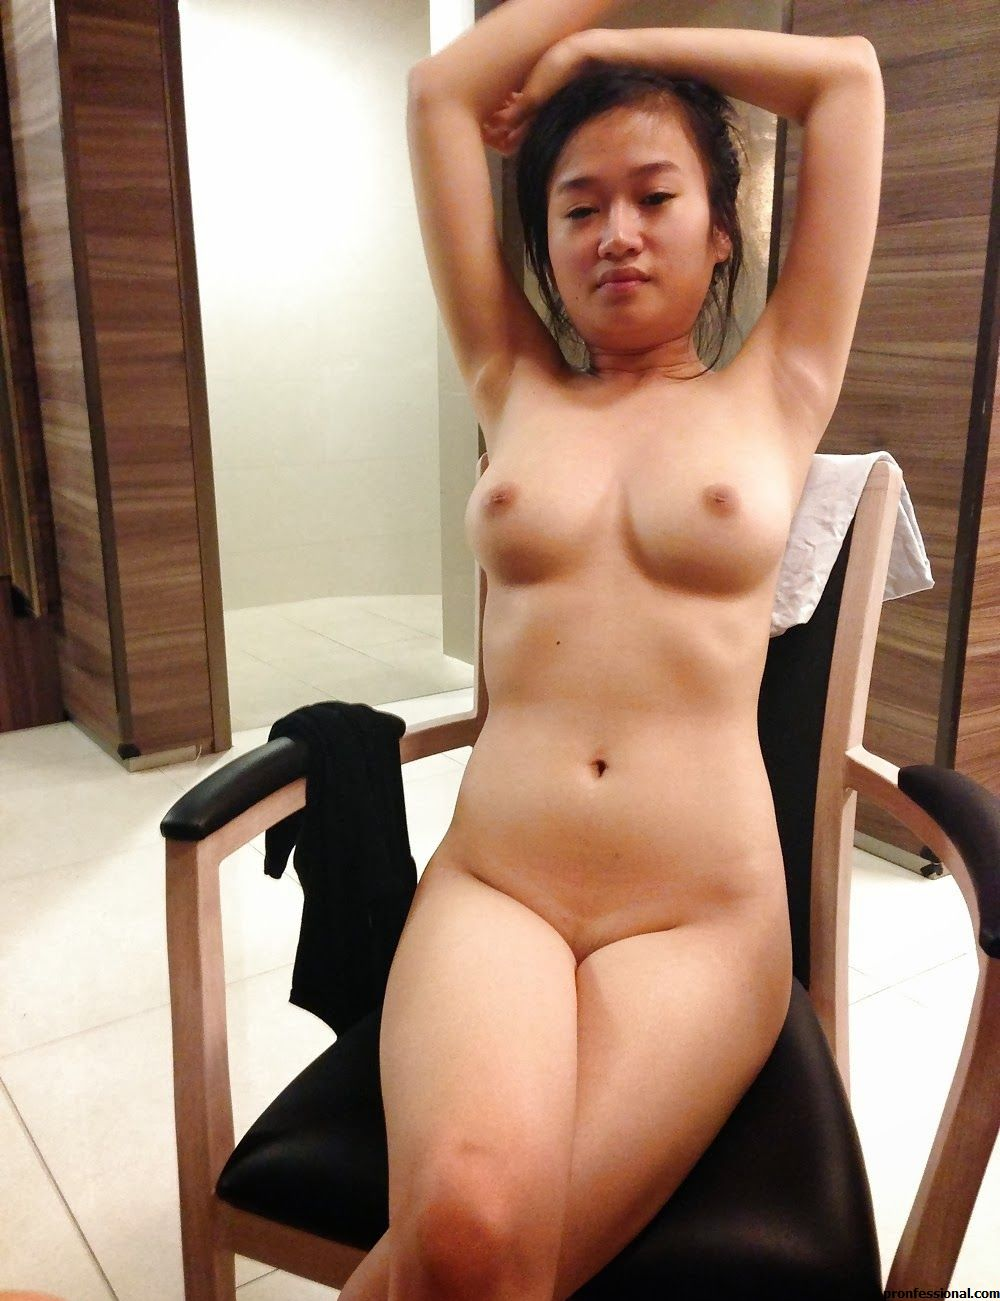 Hot pinay porno pictures good